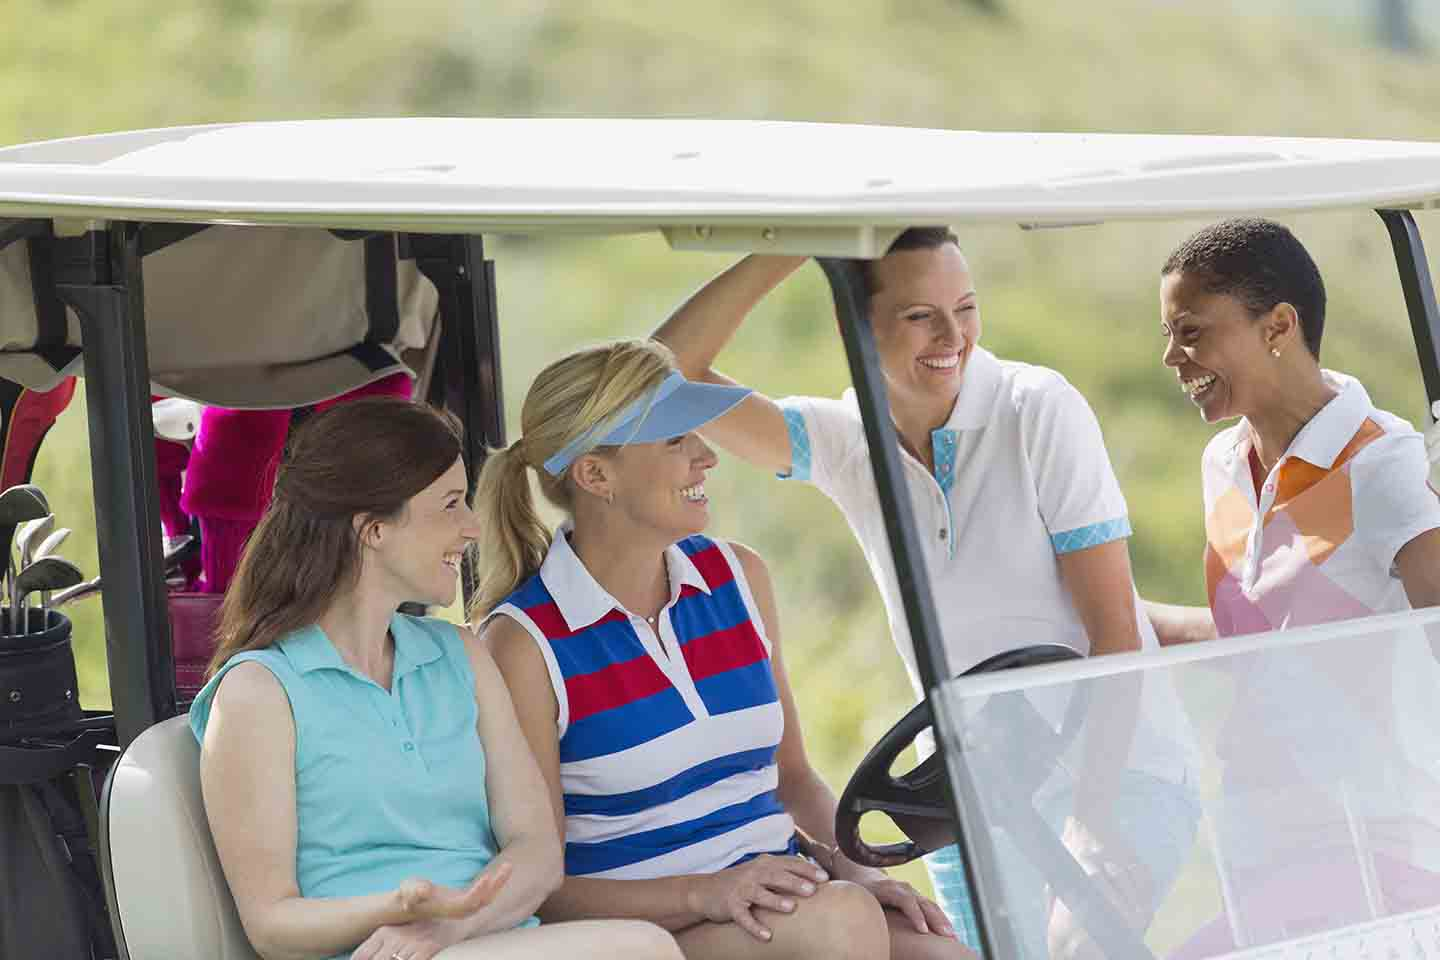 Friends standing around a golf cart conversing